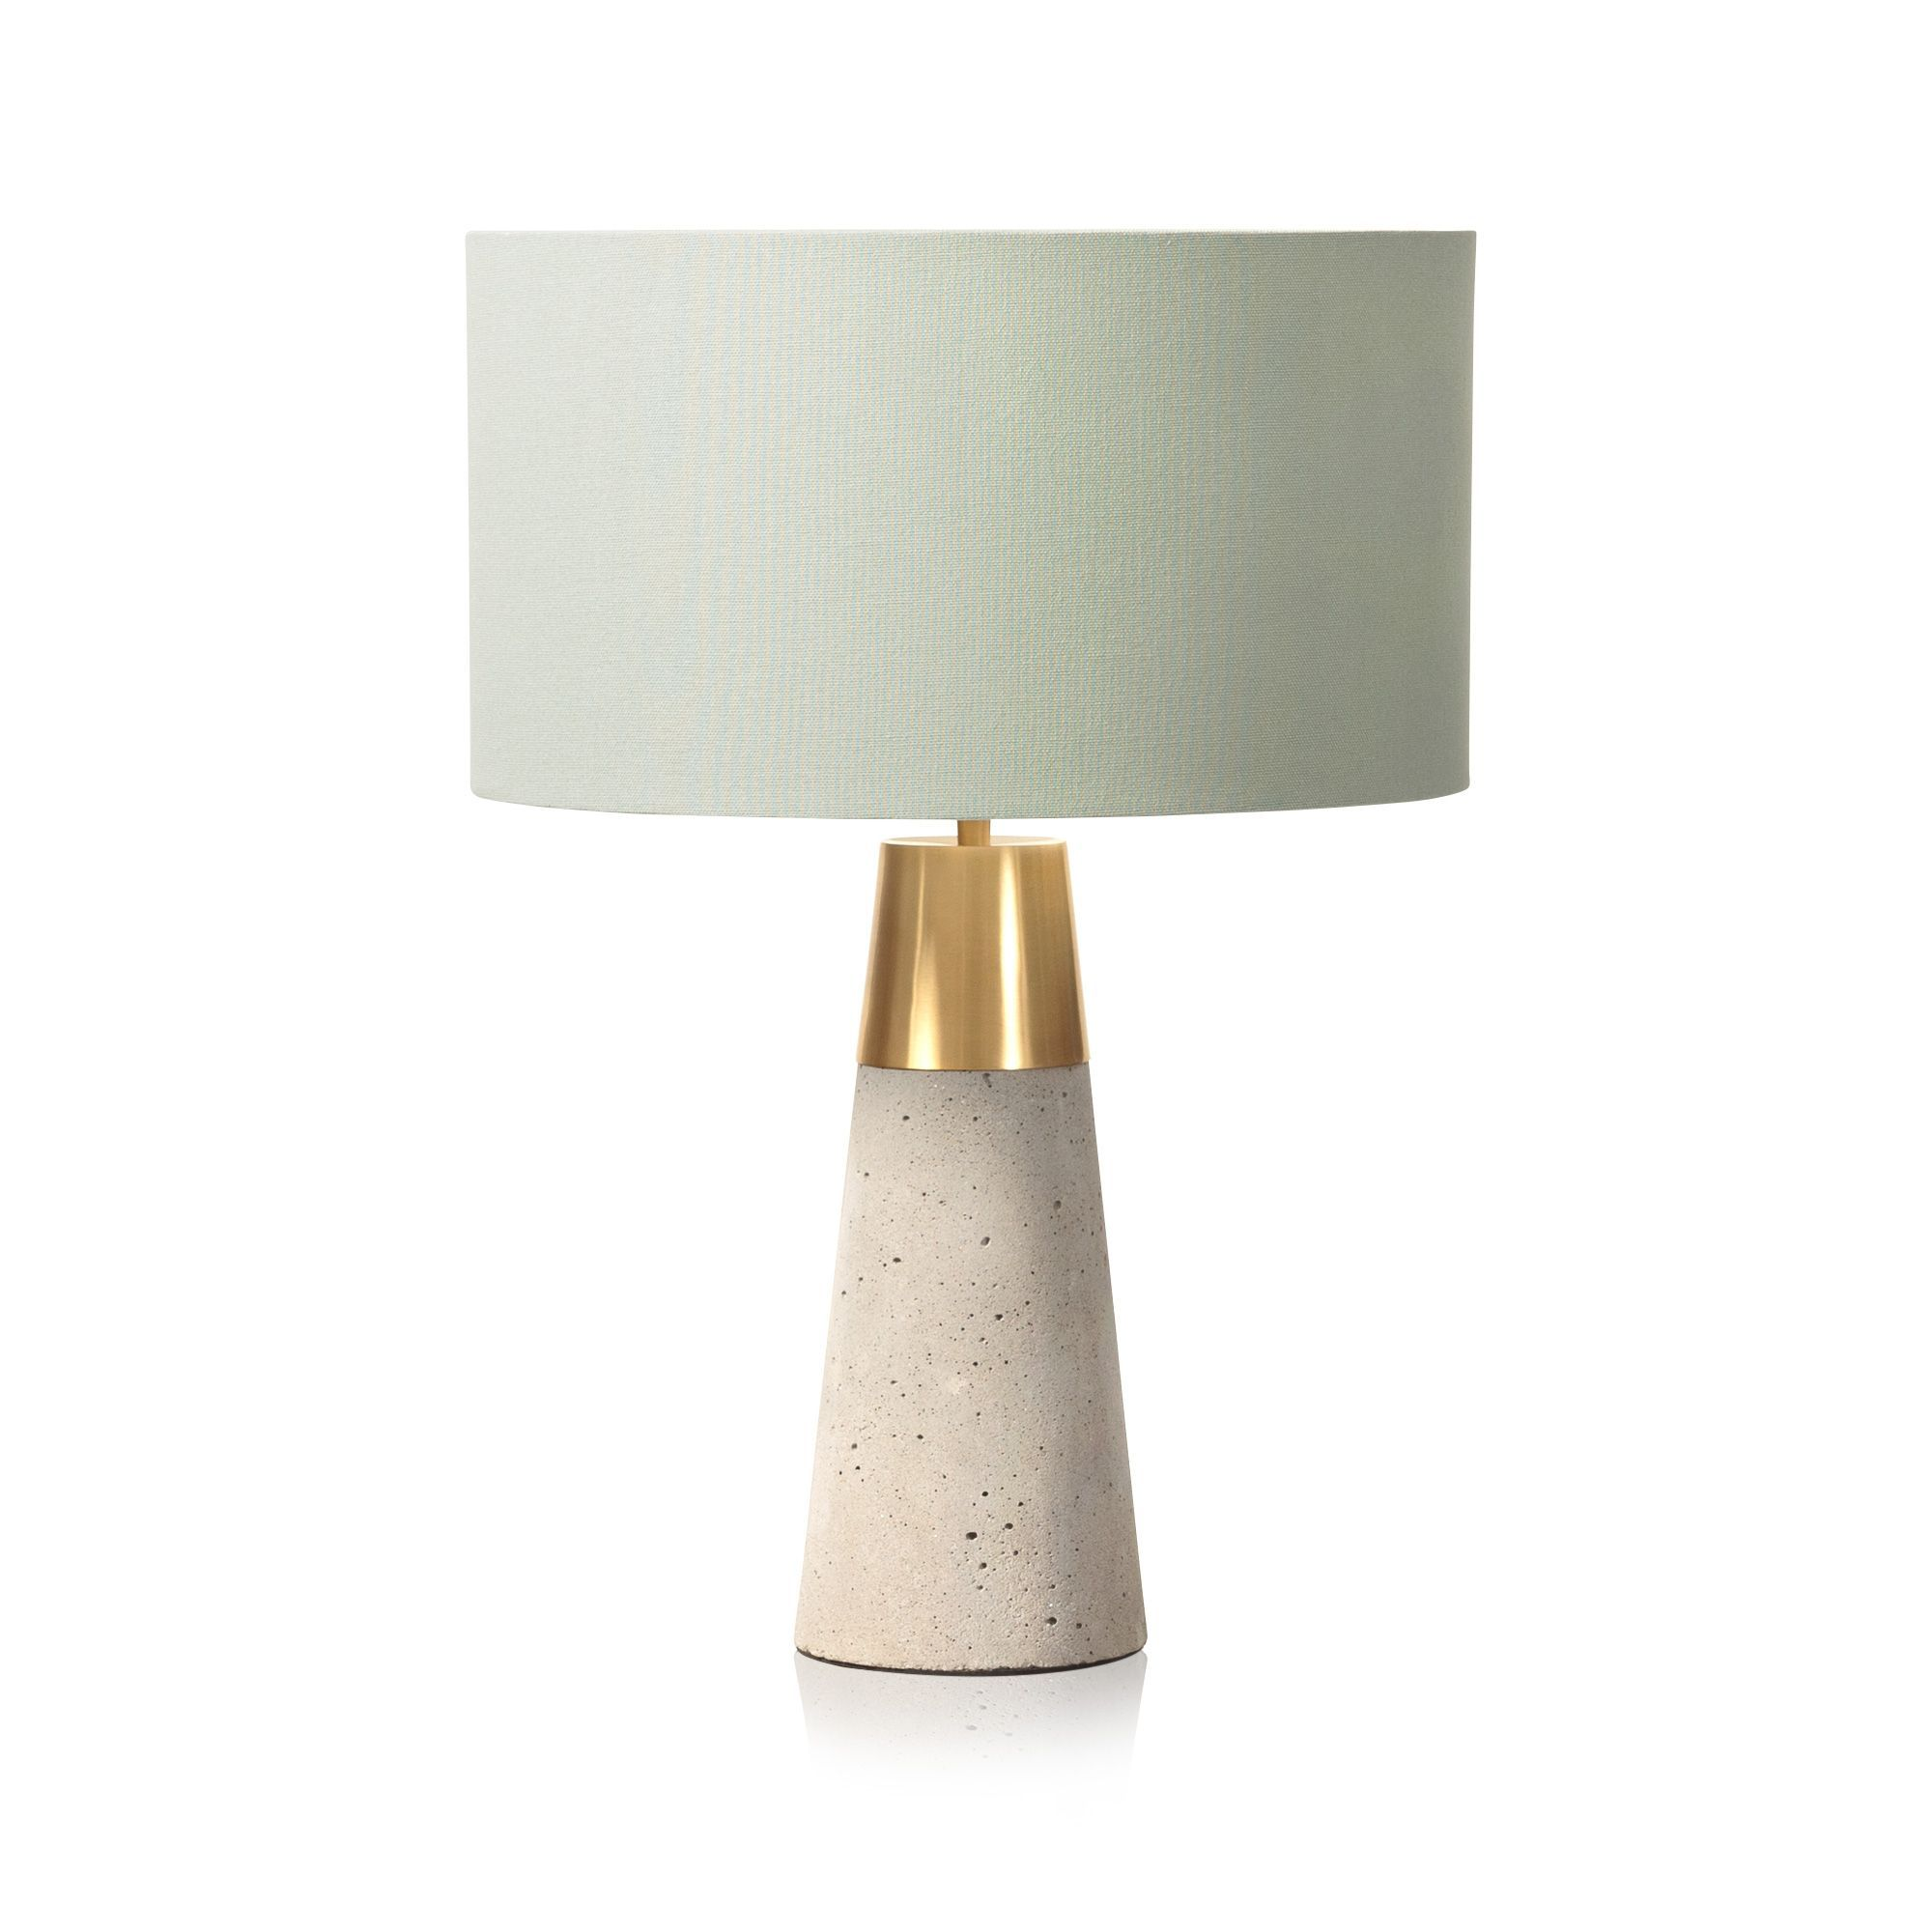 Midcentury table lamps you'll love for your midcentury